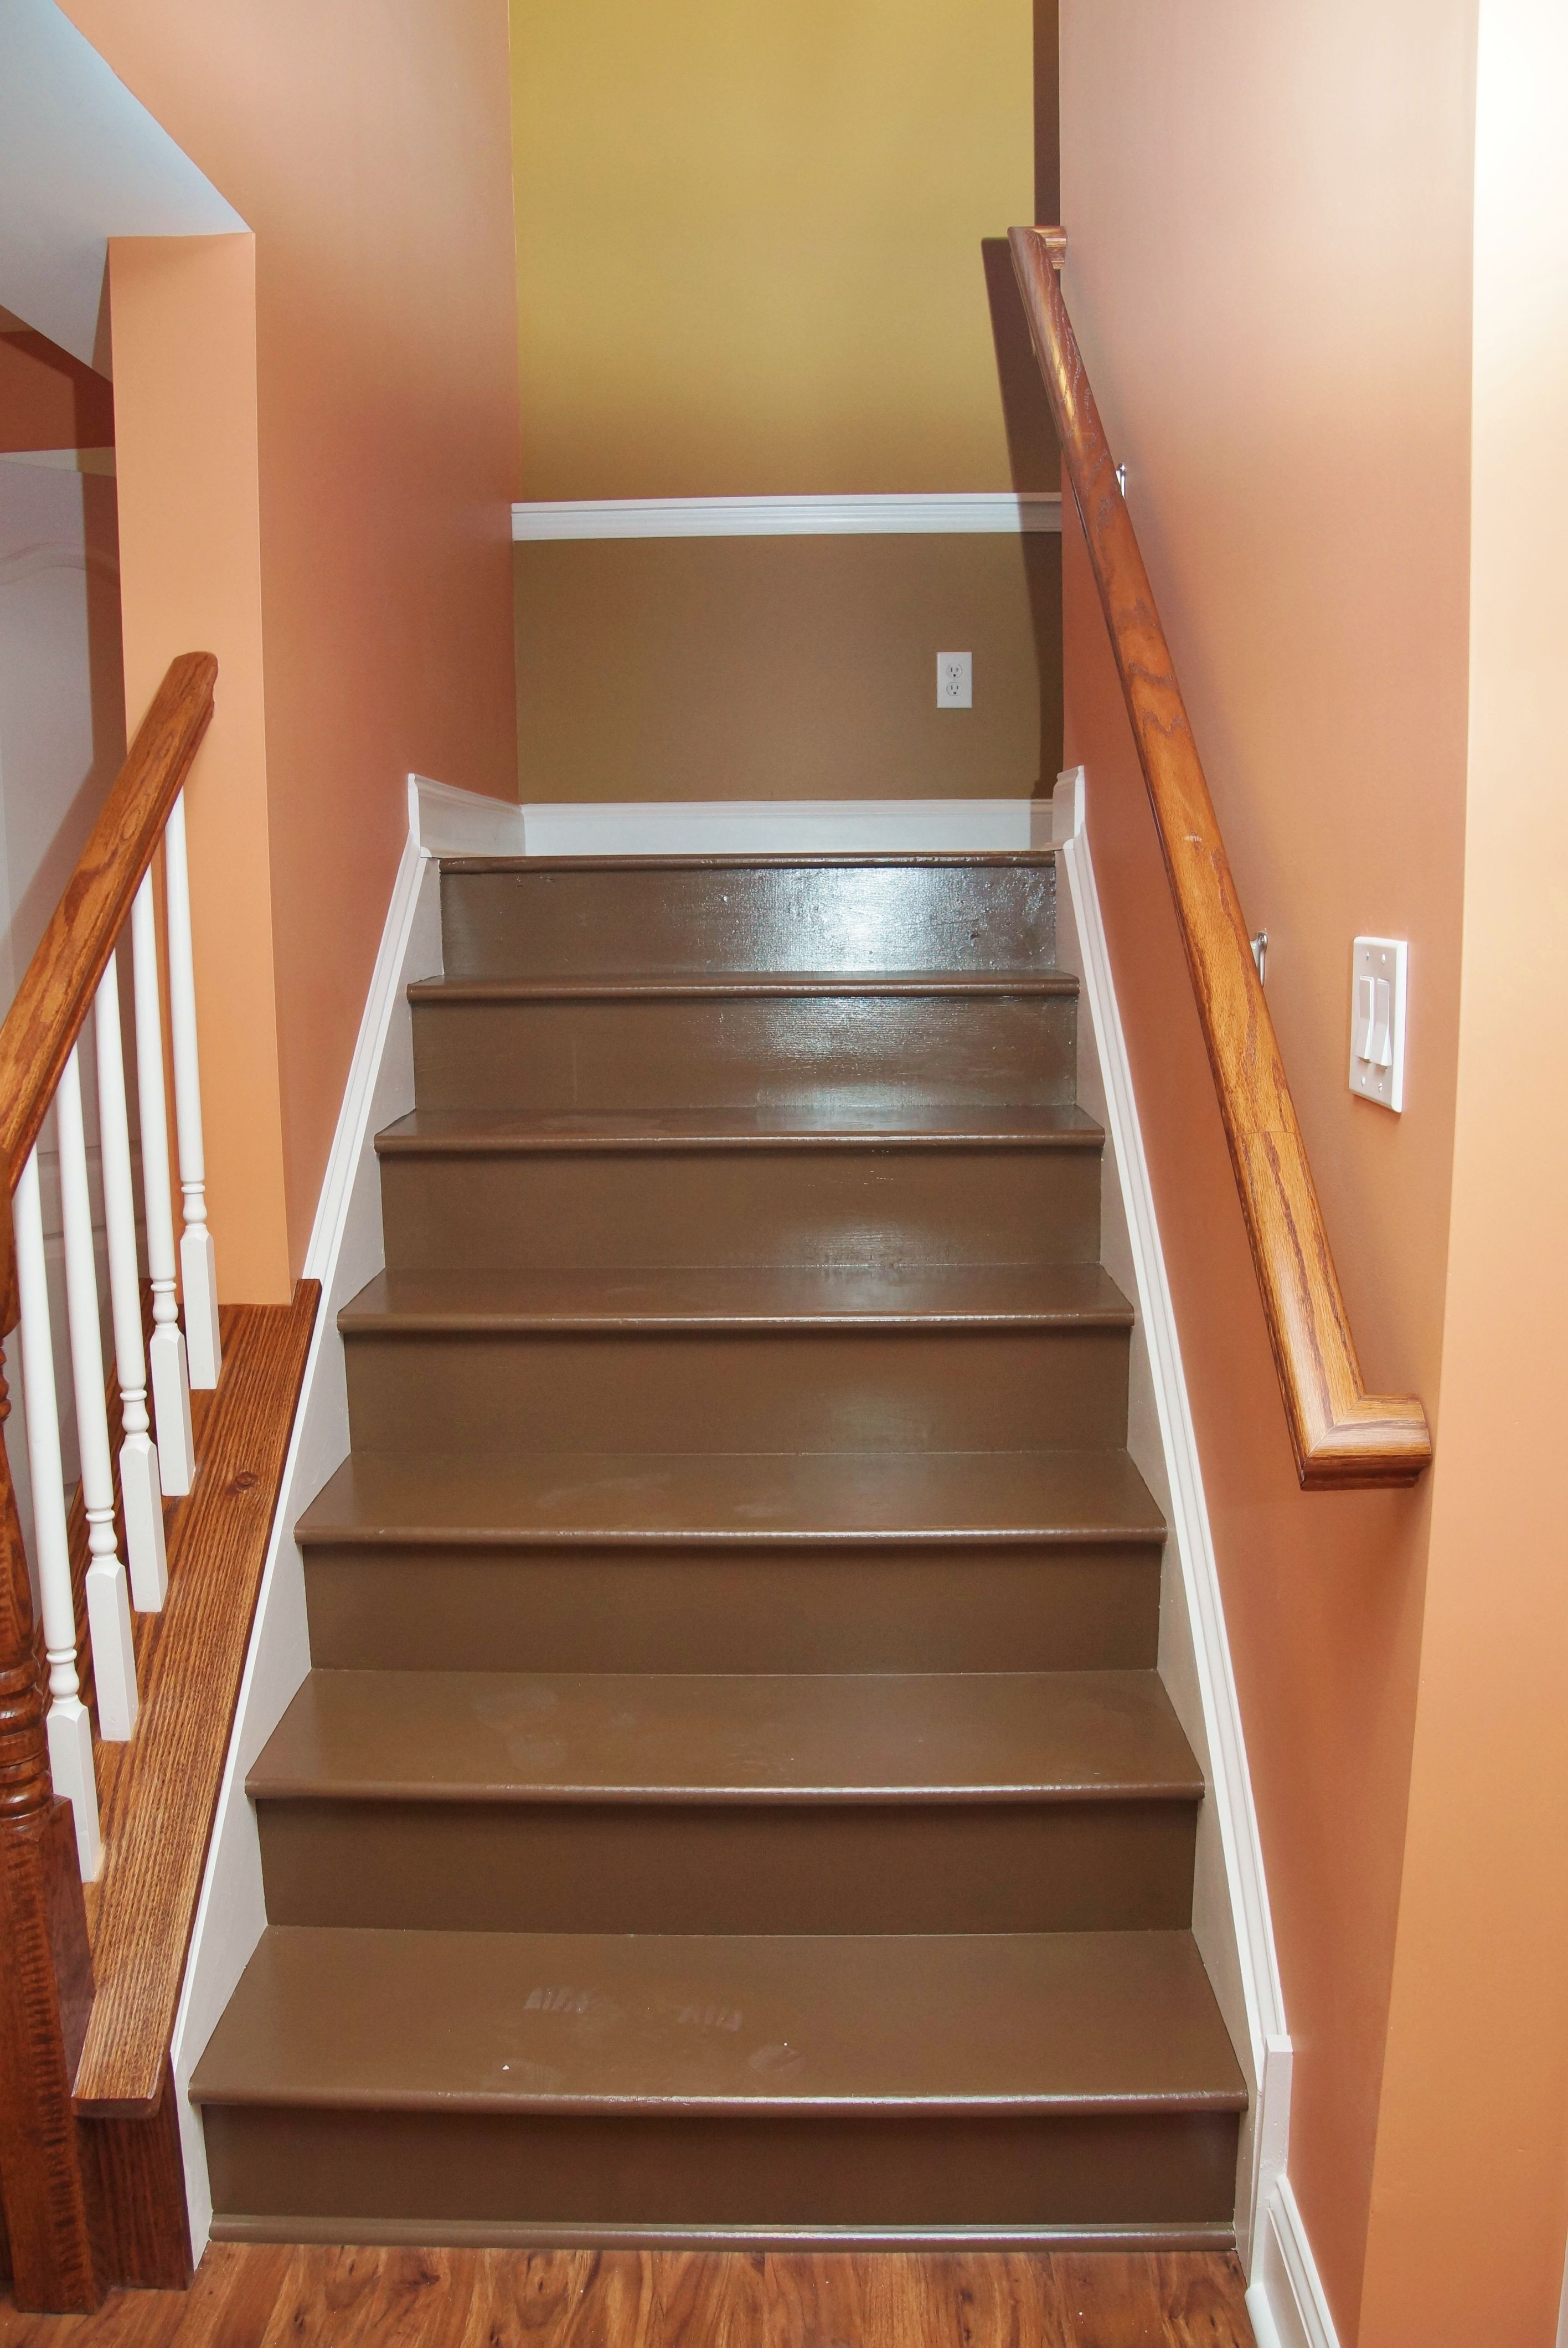 dark basement stairs. painted stairs  Google Search Home stuff Pinterest Paint